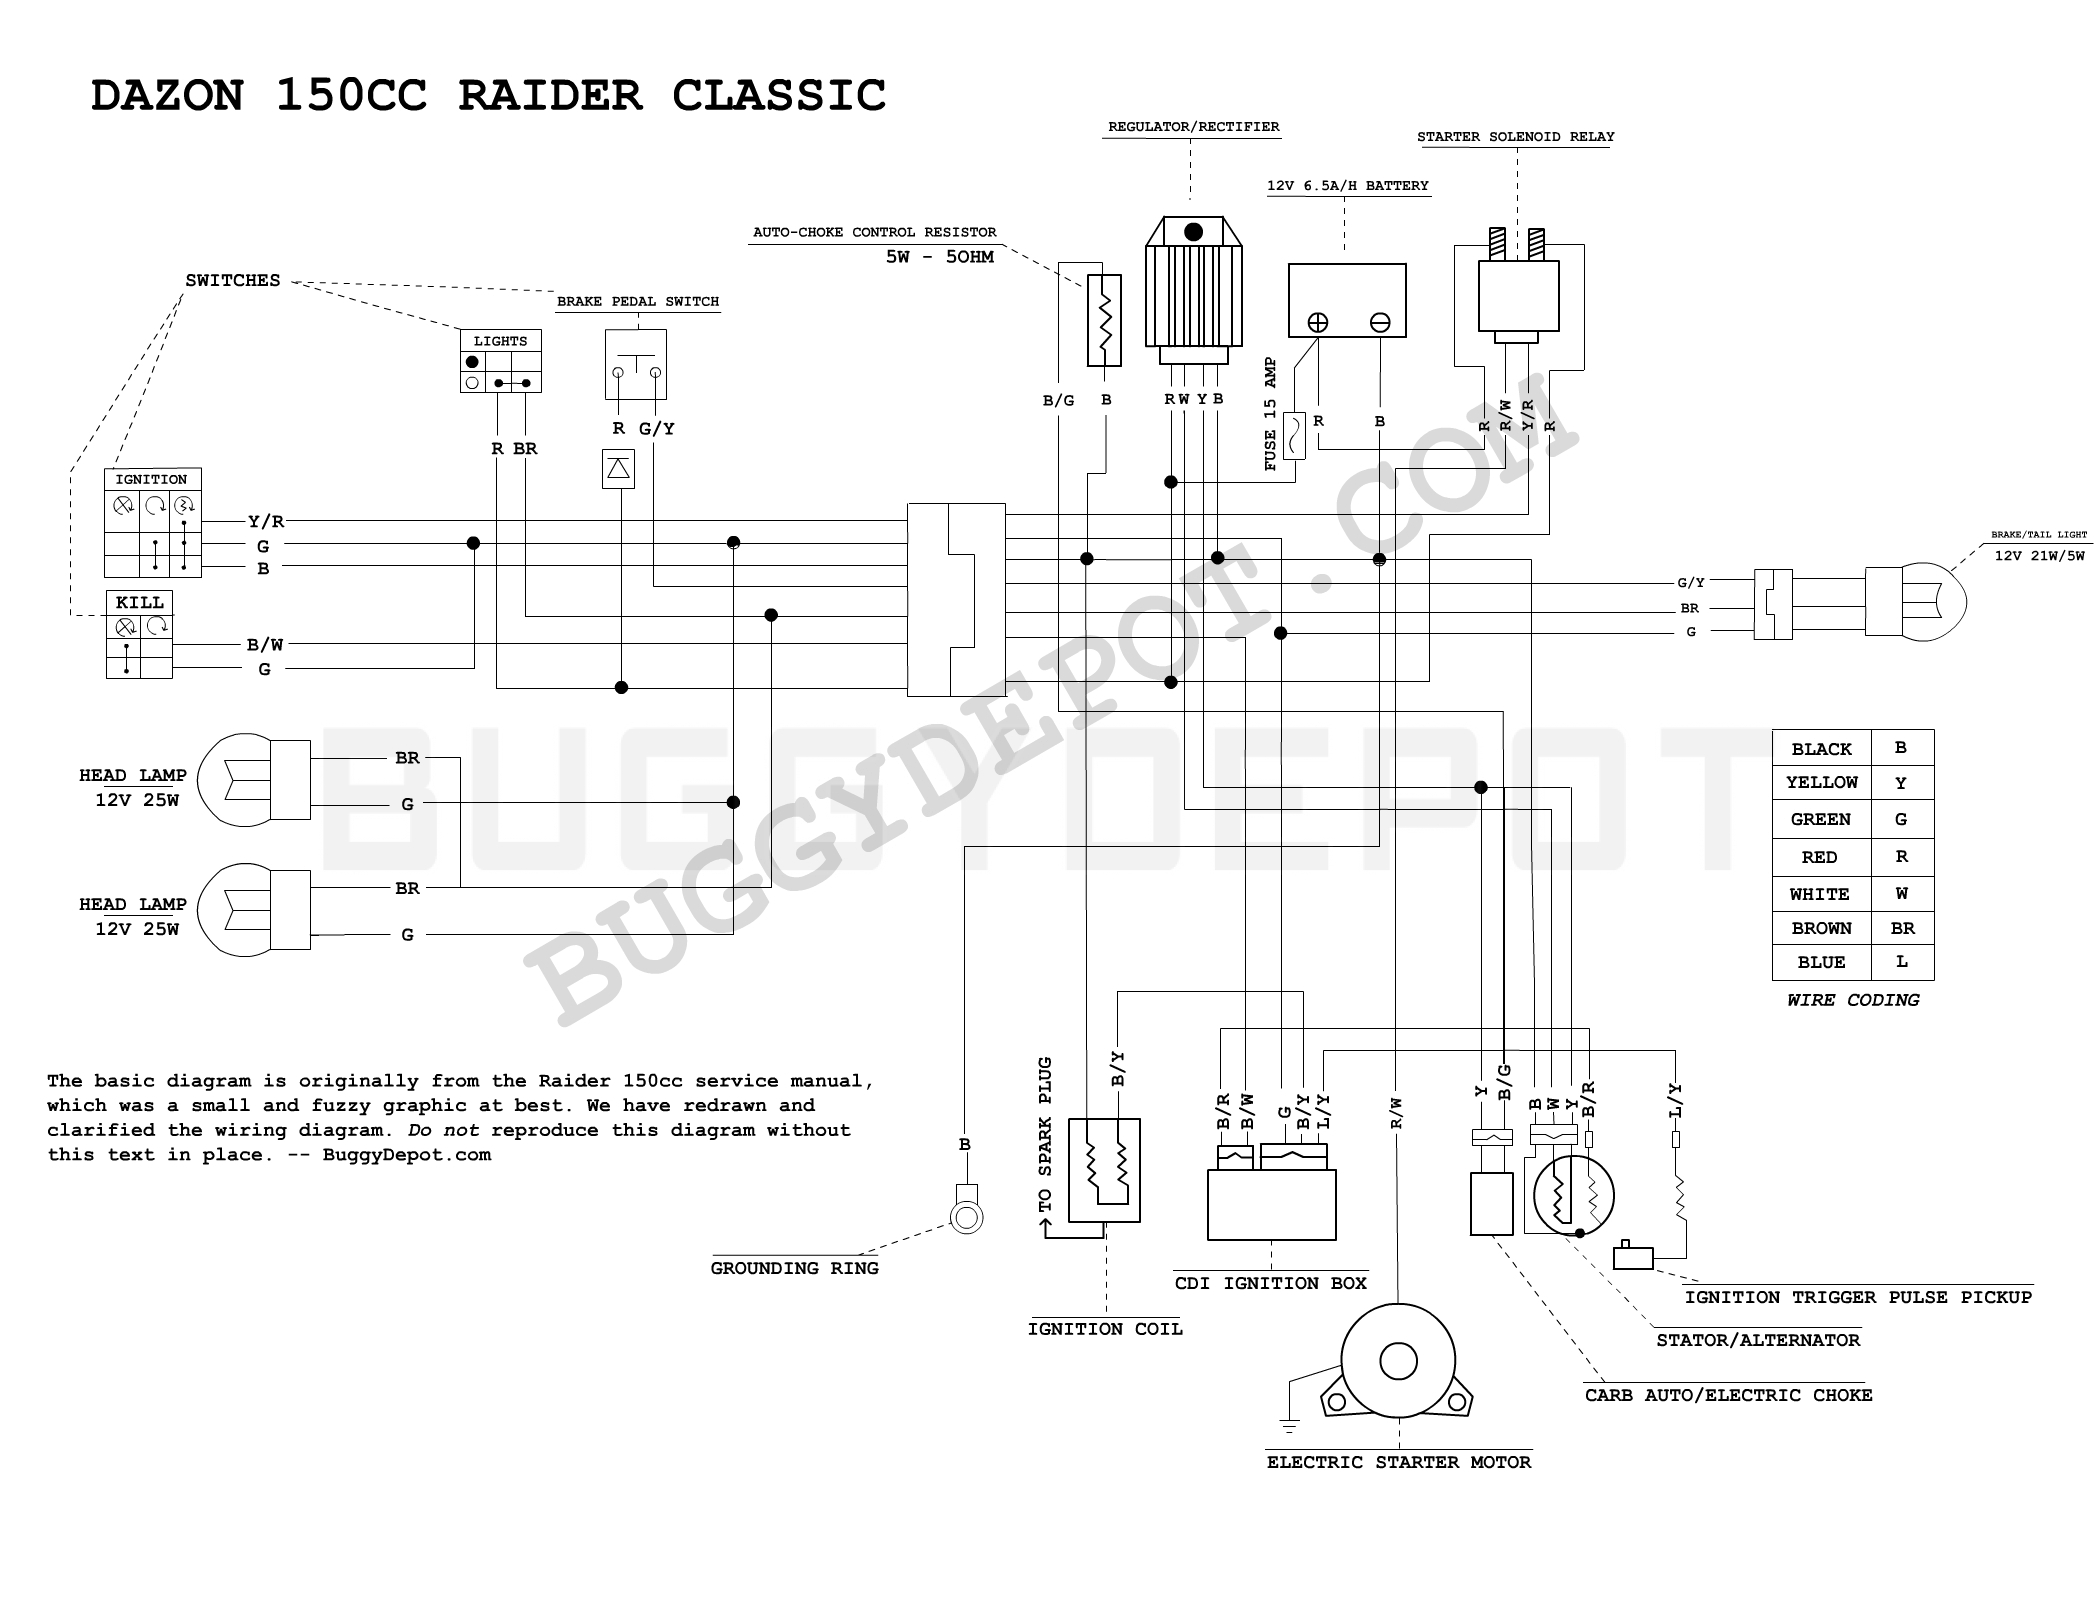 Honda Helix Wiring Diagram -12v 4 Pin Switch Wiring Diagram | Begeboy Wiring  Diagram SourceBegeboy Wiring Diagram Source